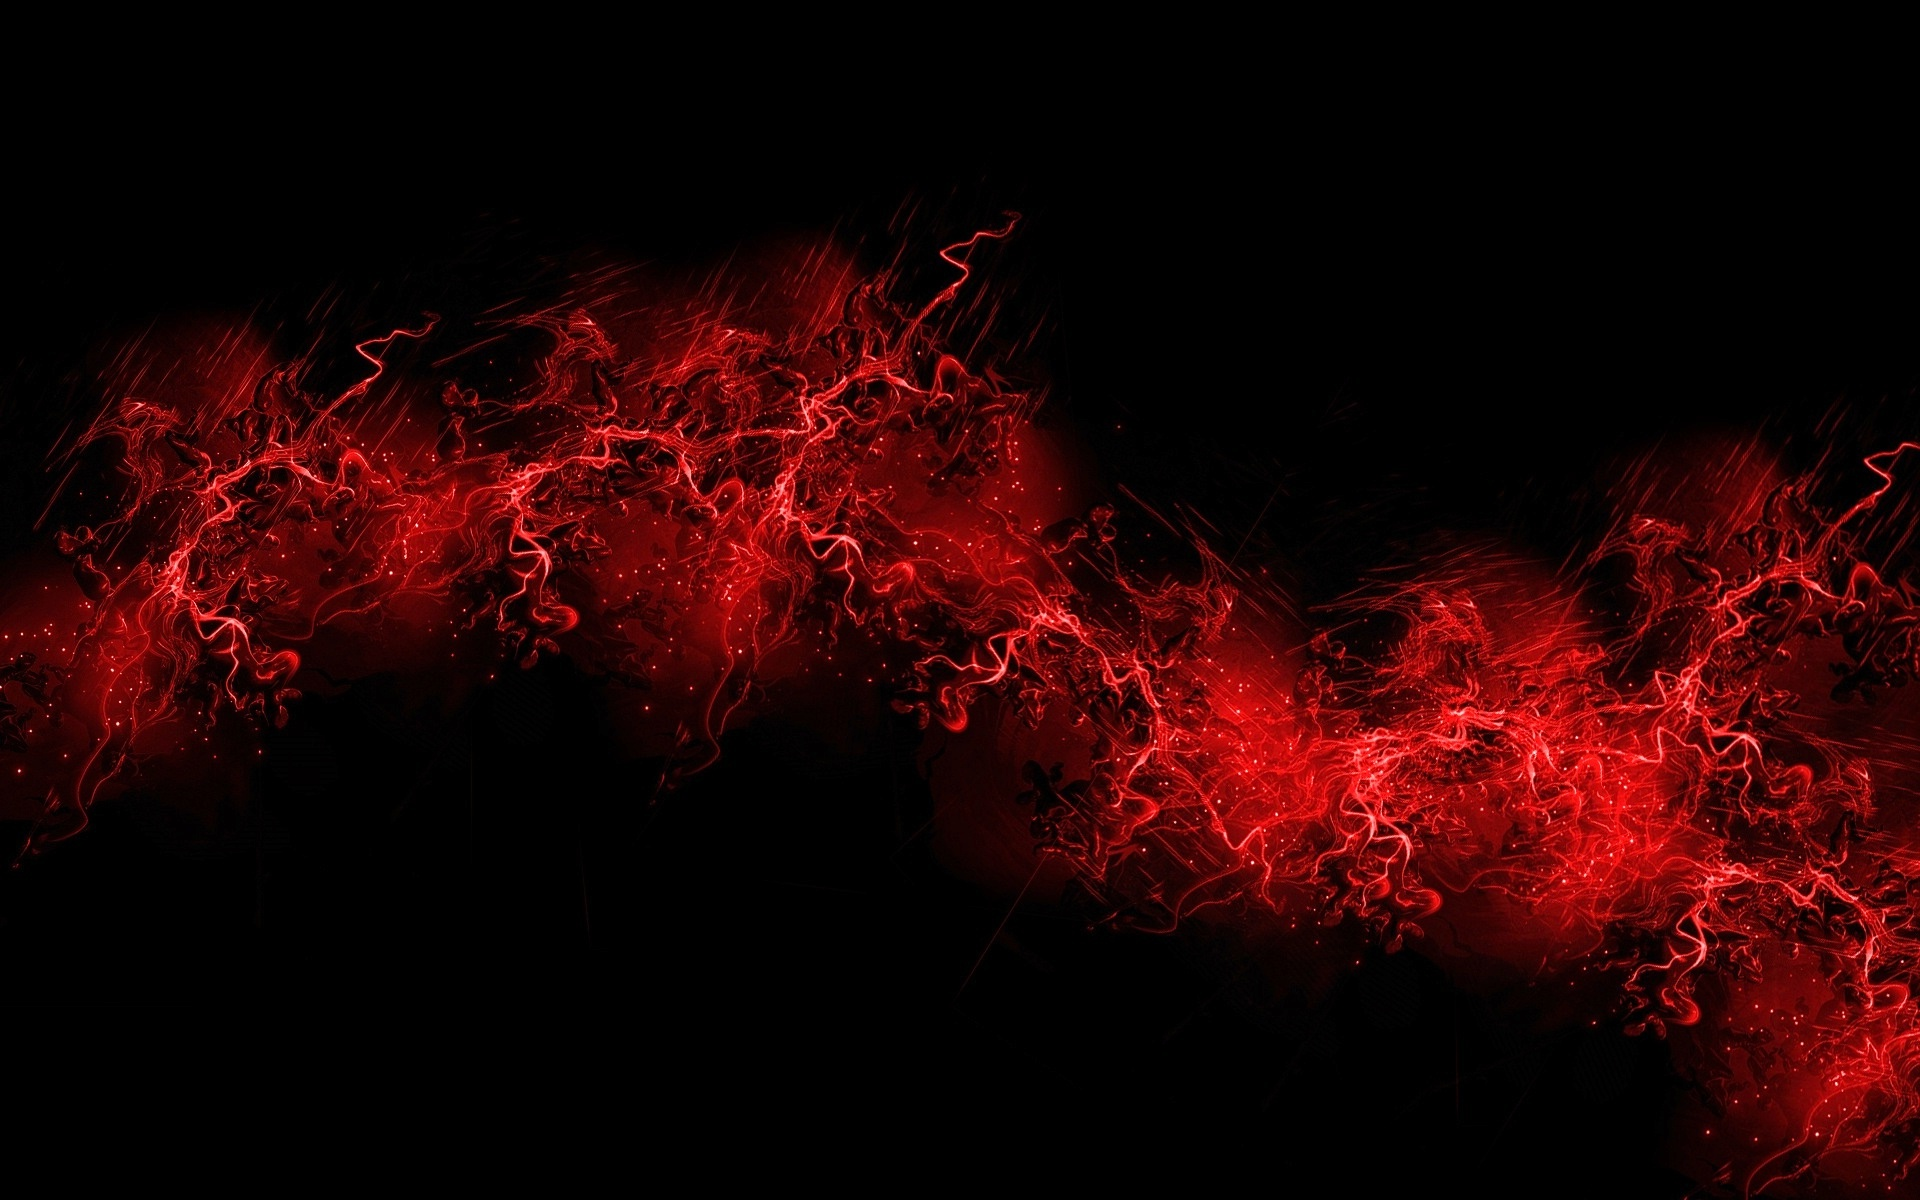 Black And Red >> Black And Red Background Wallpaper 4 Desktop Background